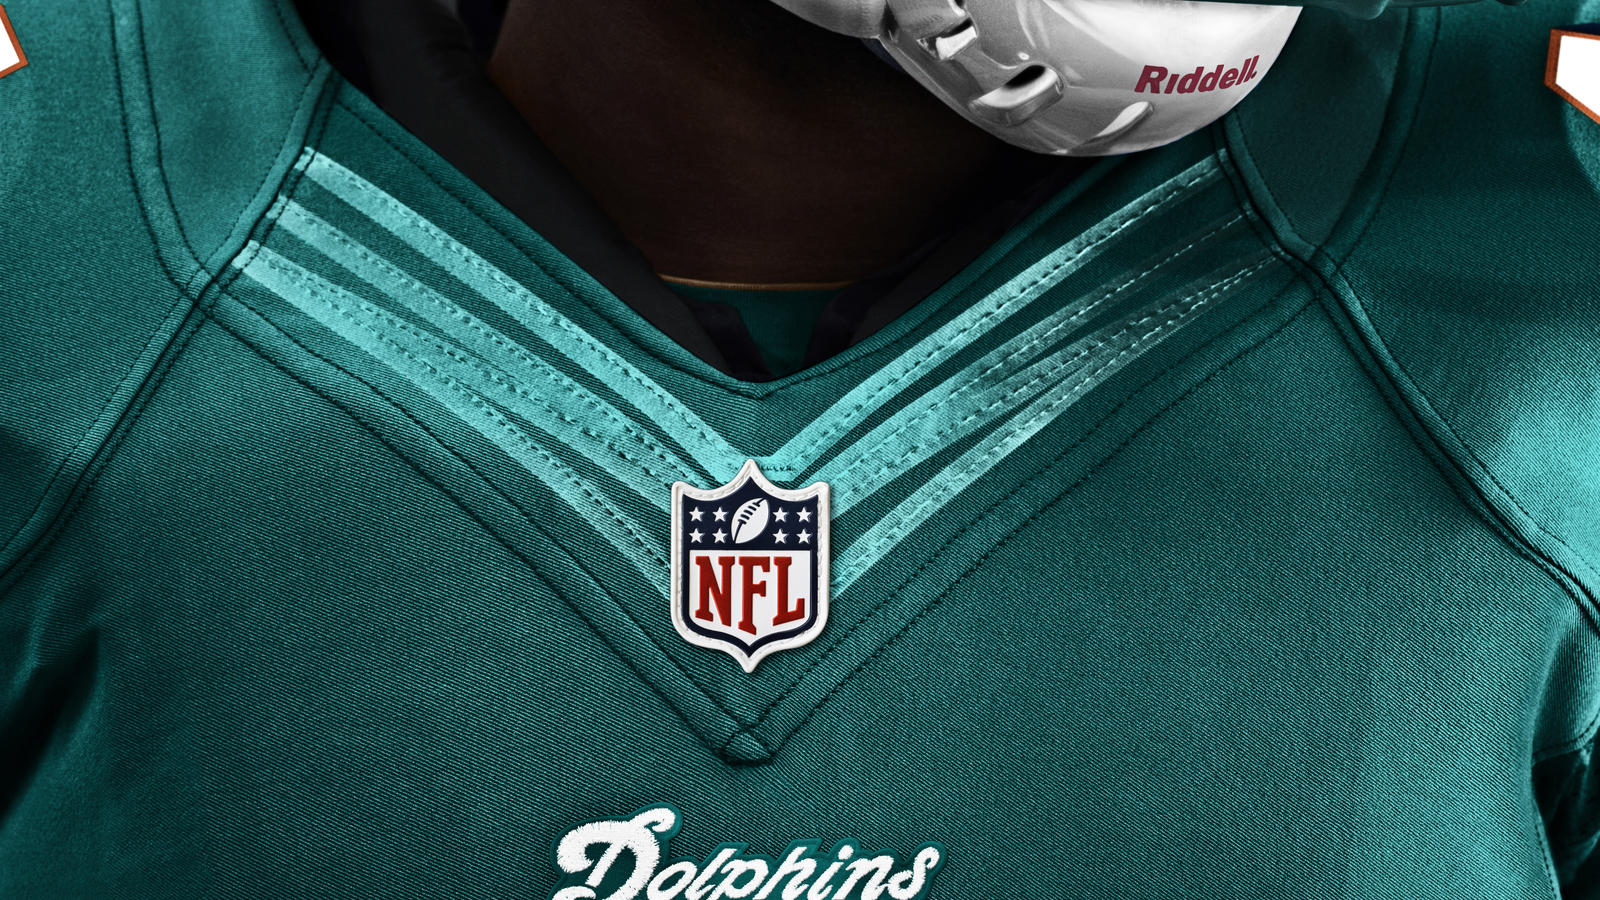 Miami Dolphins Wallpaper 48 Image Collections - New York Giants , HD Wallpaper & Backgrounds